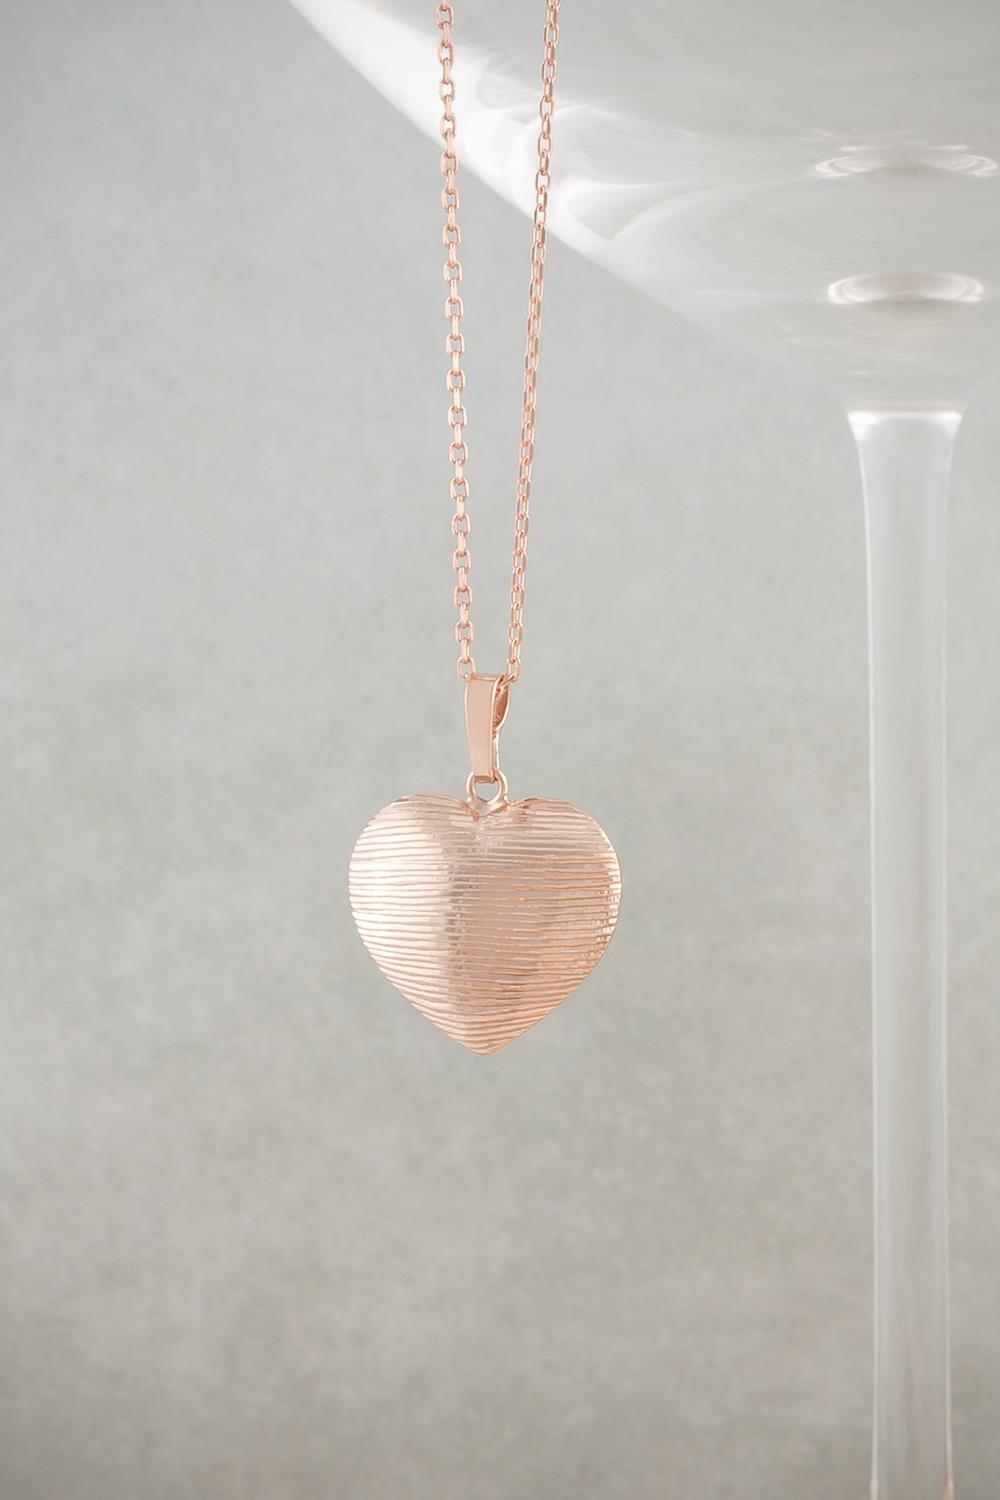 ad02497f9da8a Necklaces   Rose Gold Diamond Cut Heart Necklace at Baronessa